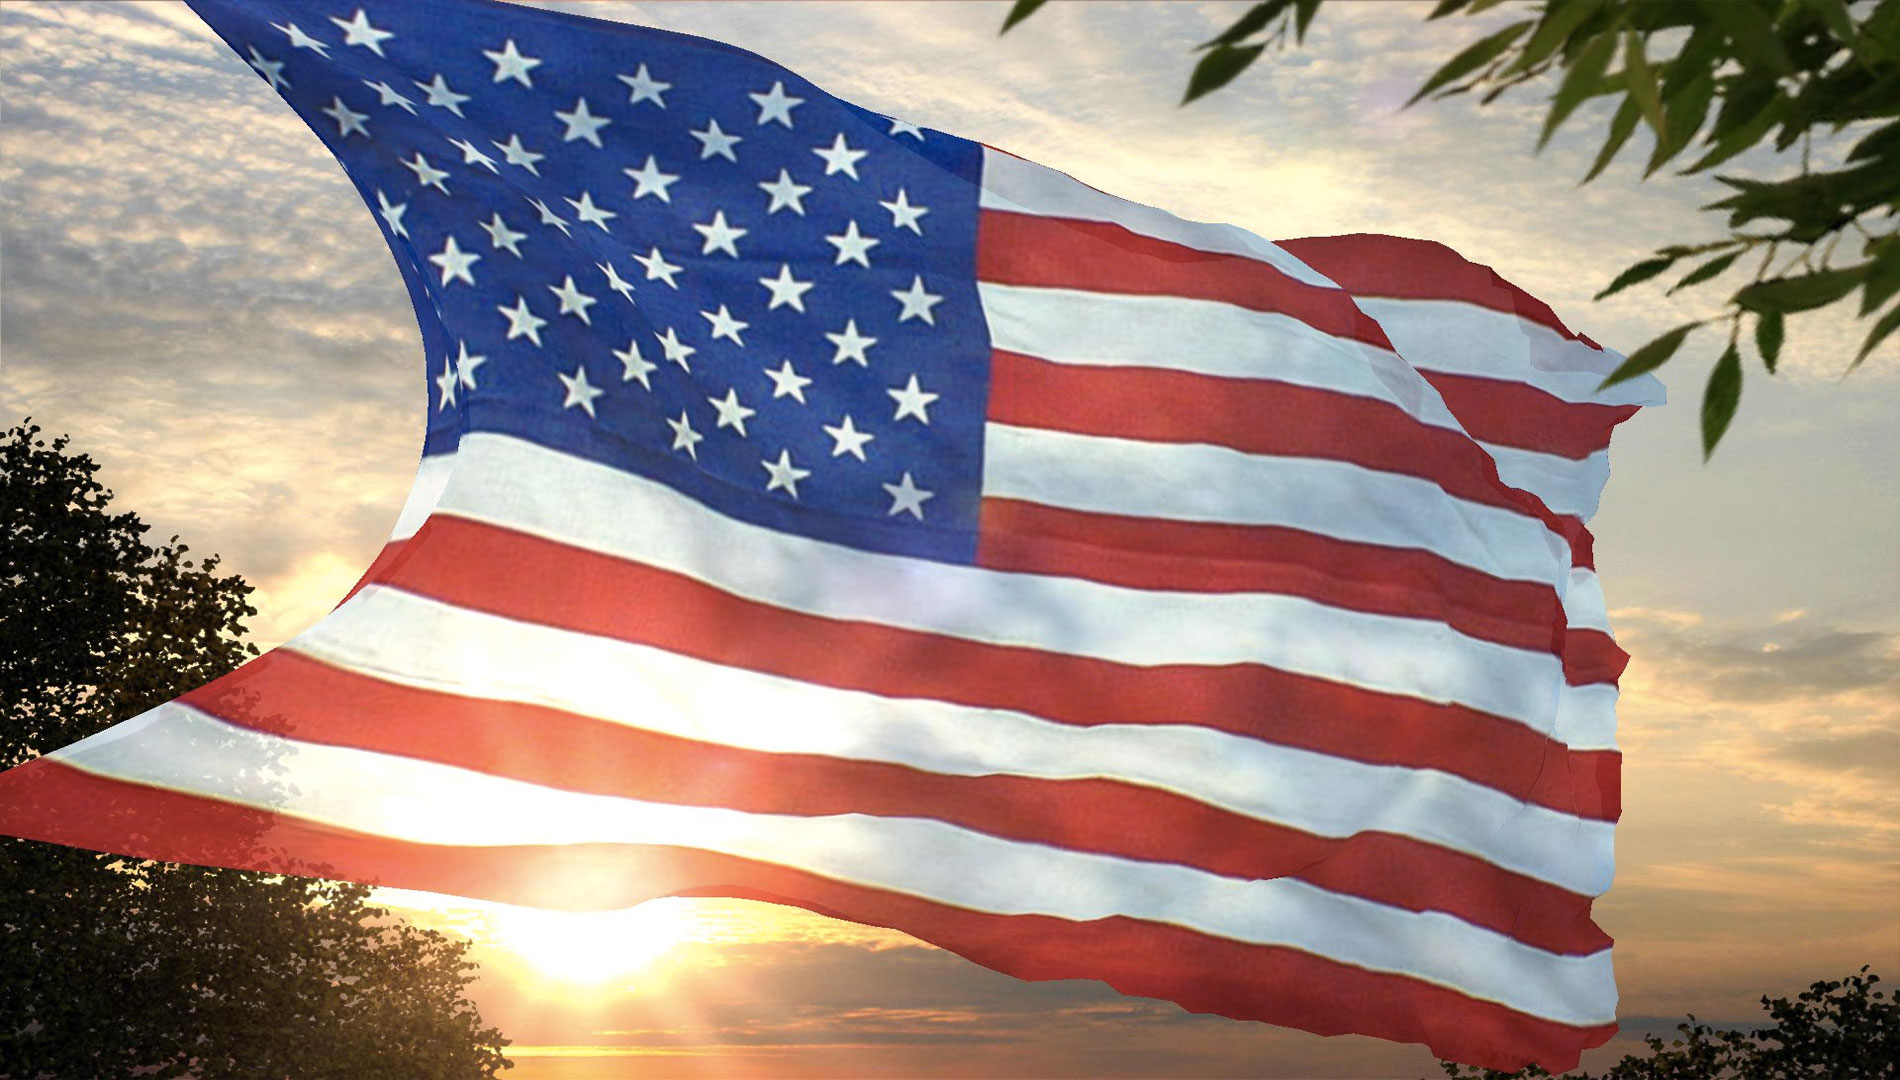 American Flag Background HD Image